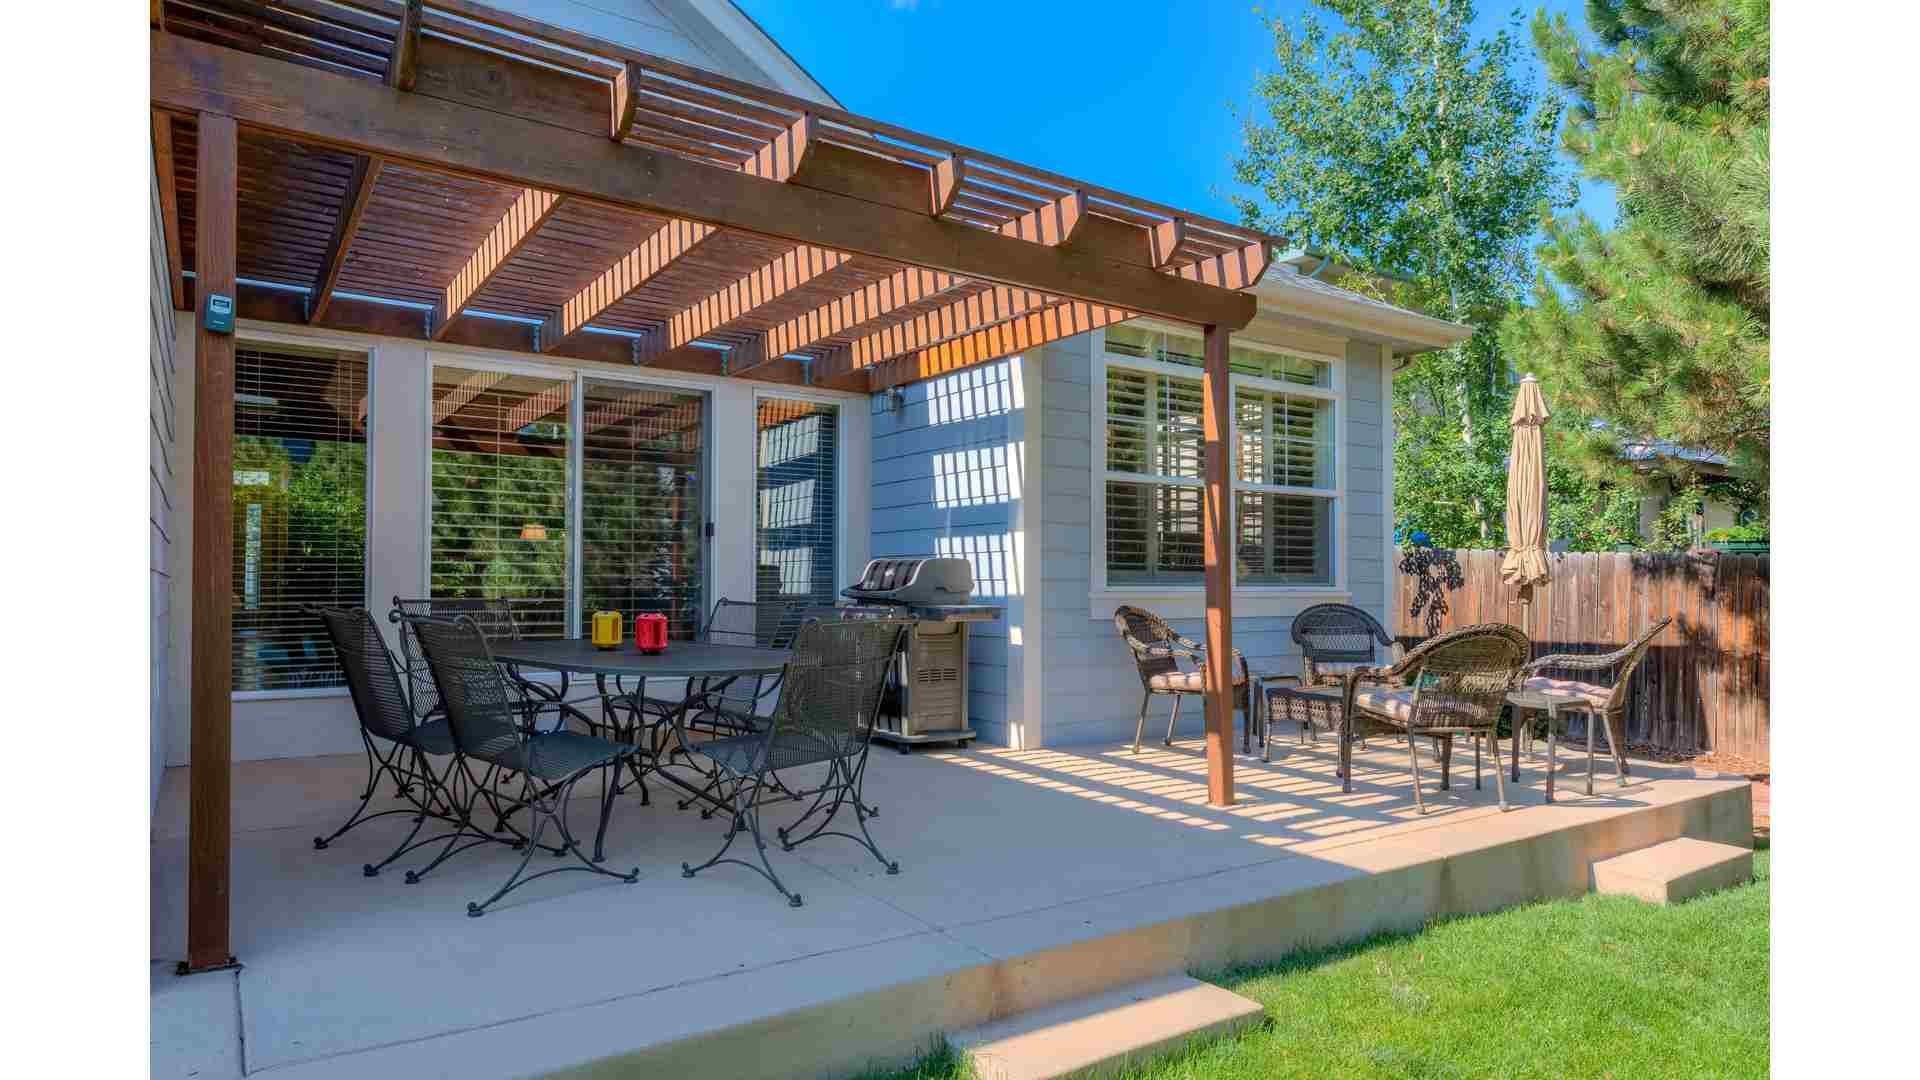 09 1995 Exterior Back Patio 5TMDE Default RVT2 NR 1920 - Real Estate Photos